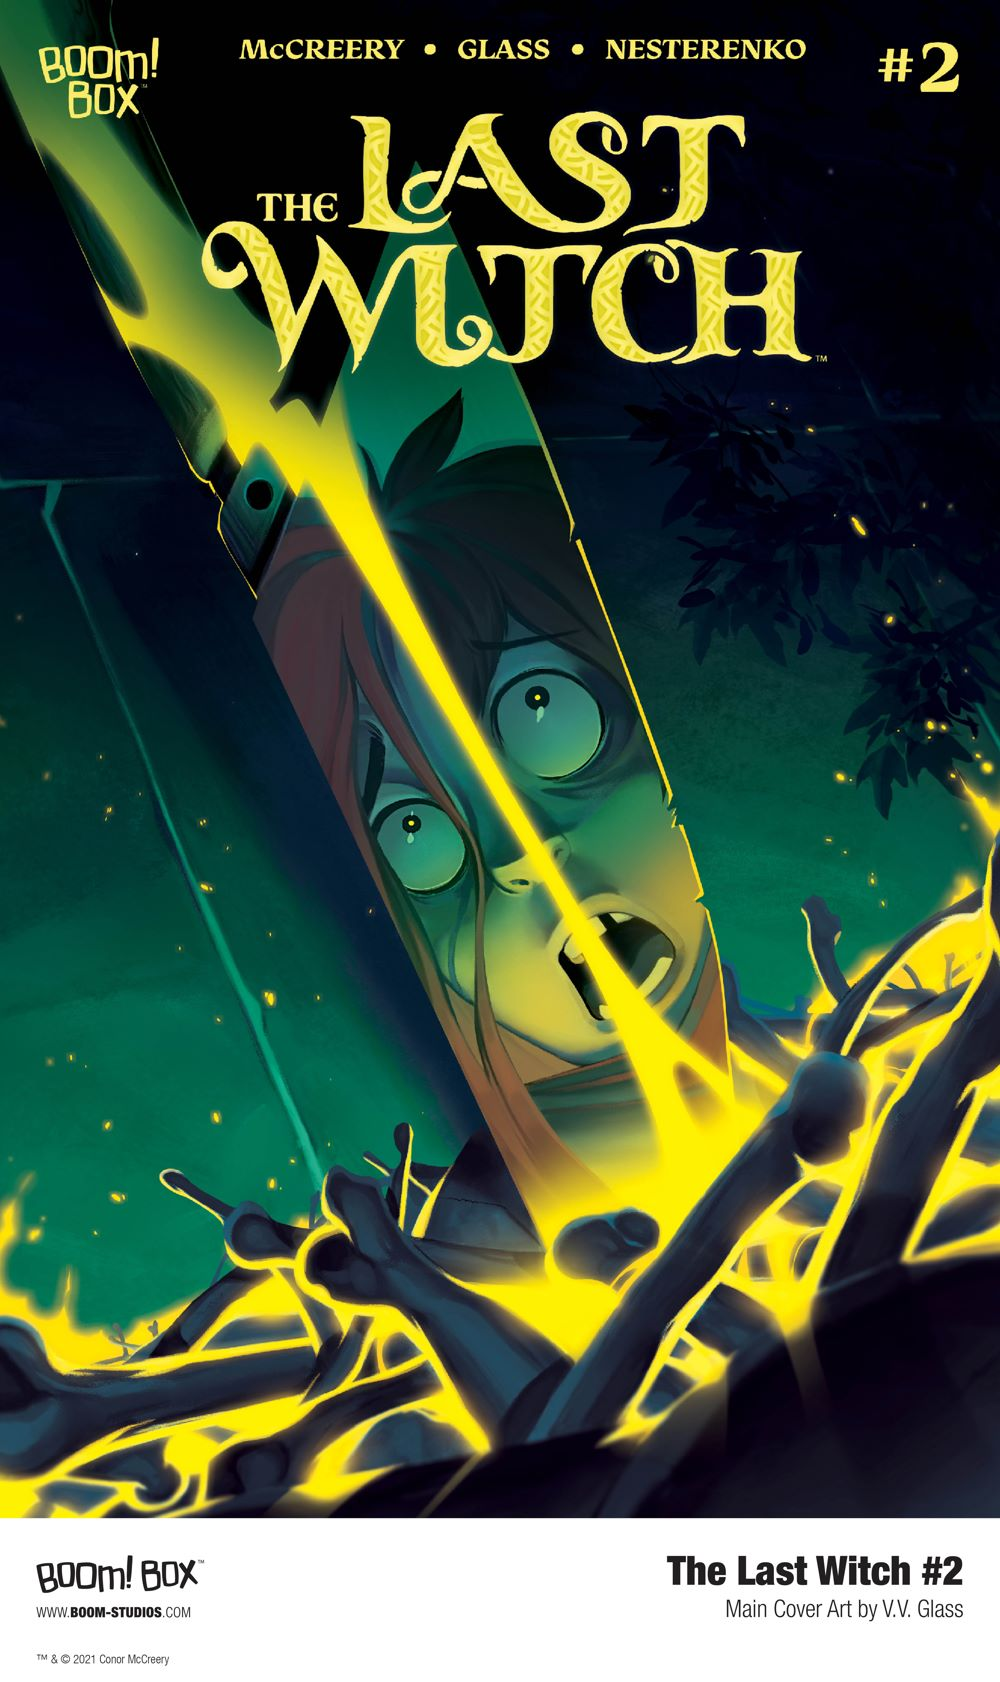 LastWitch_002_Cover_Main_PROMO First Look at BOOM! Studios' THE LAST WITCH #2